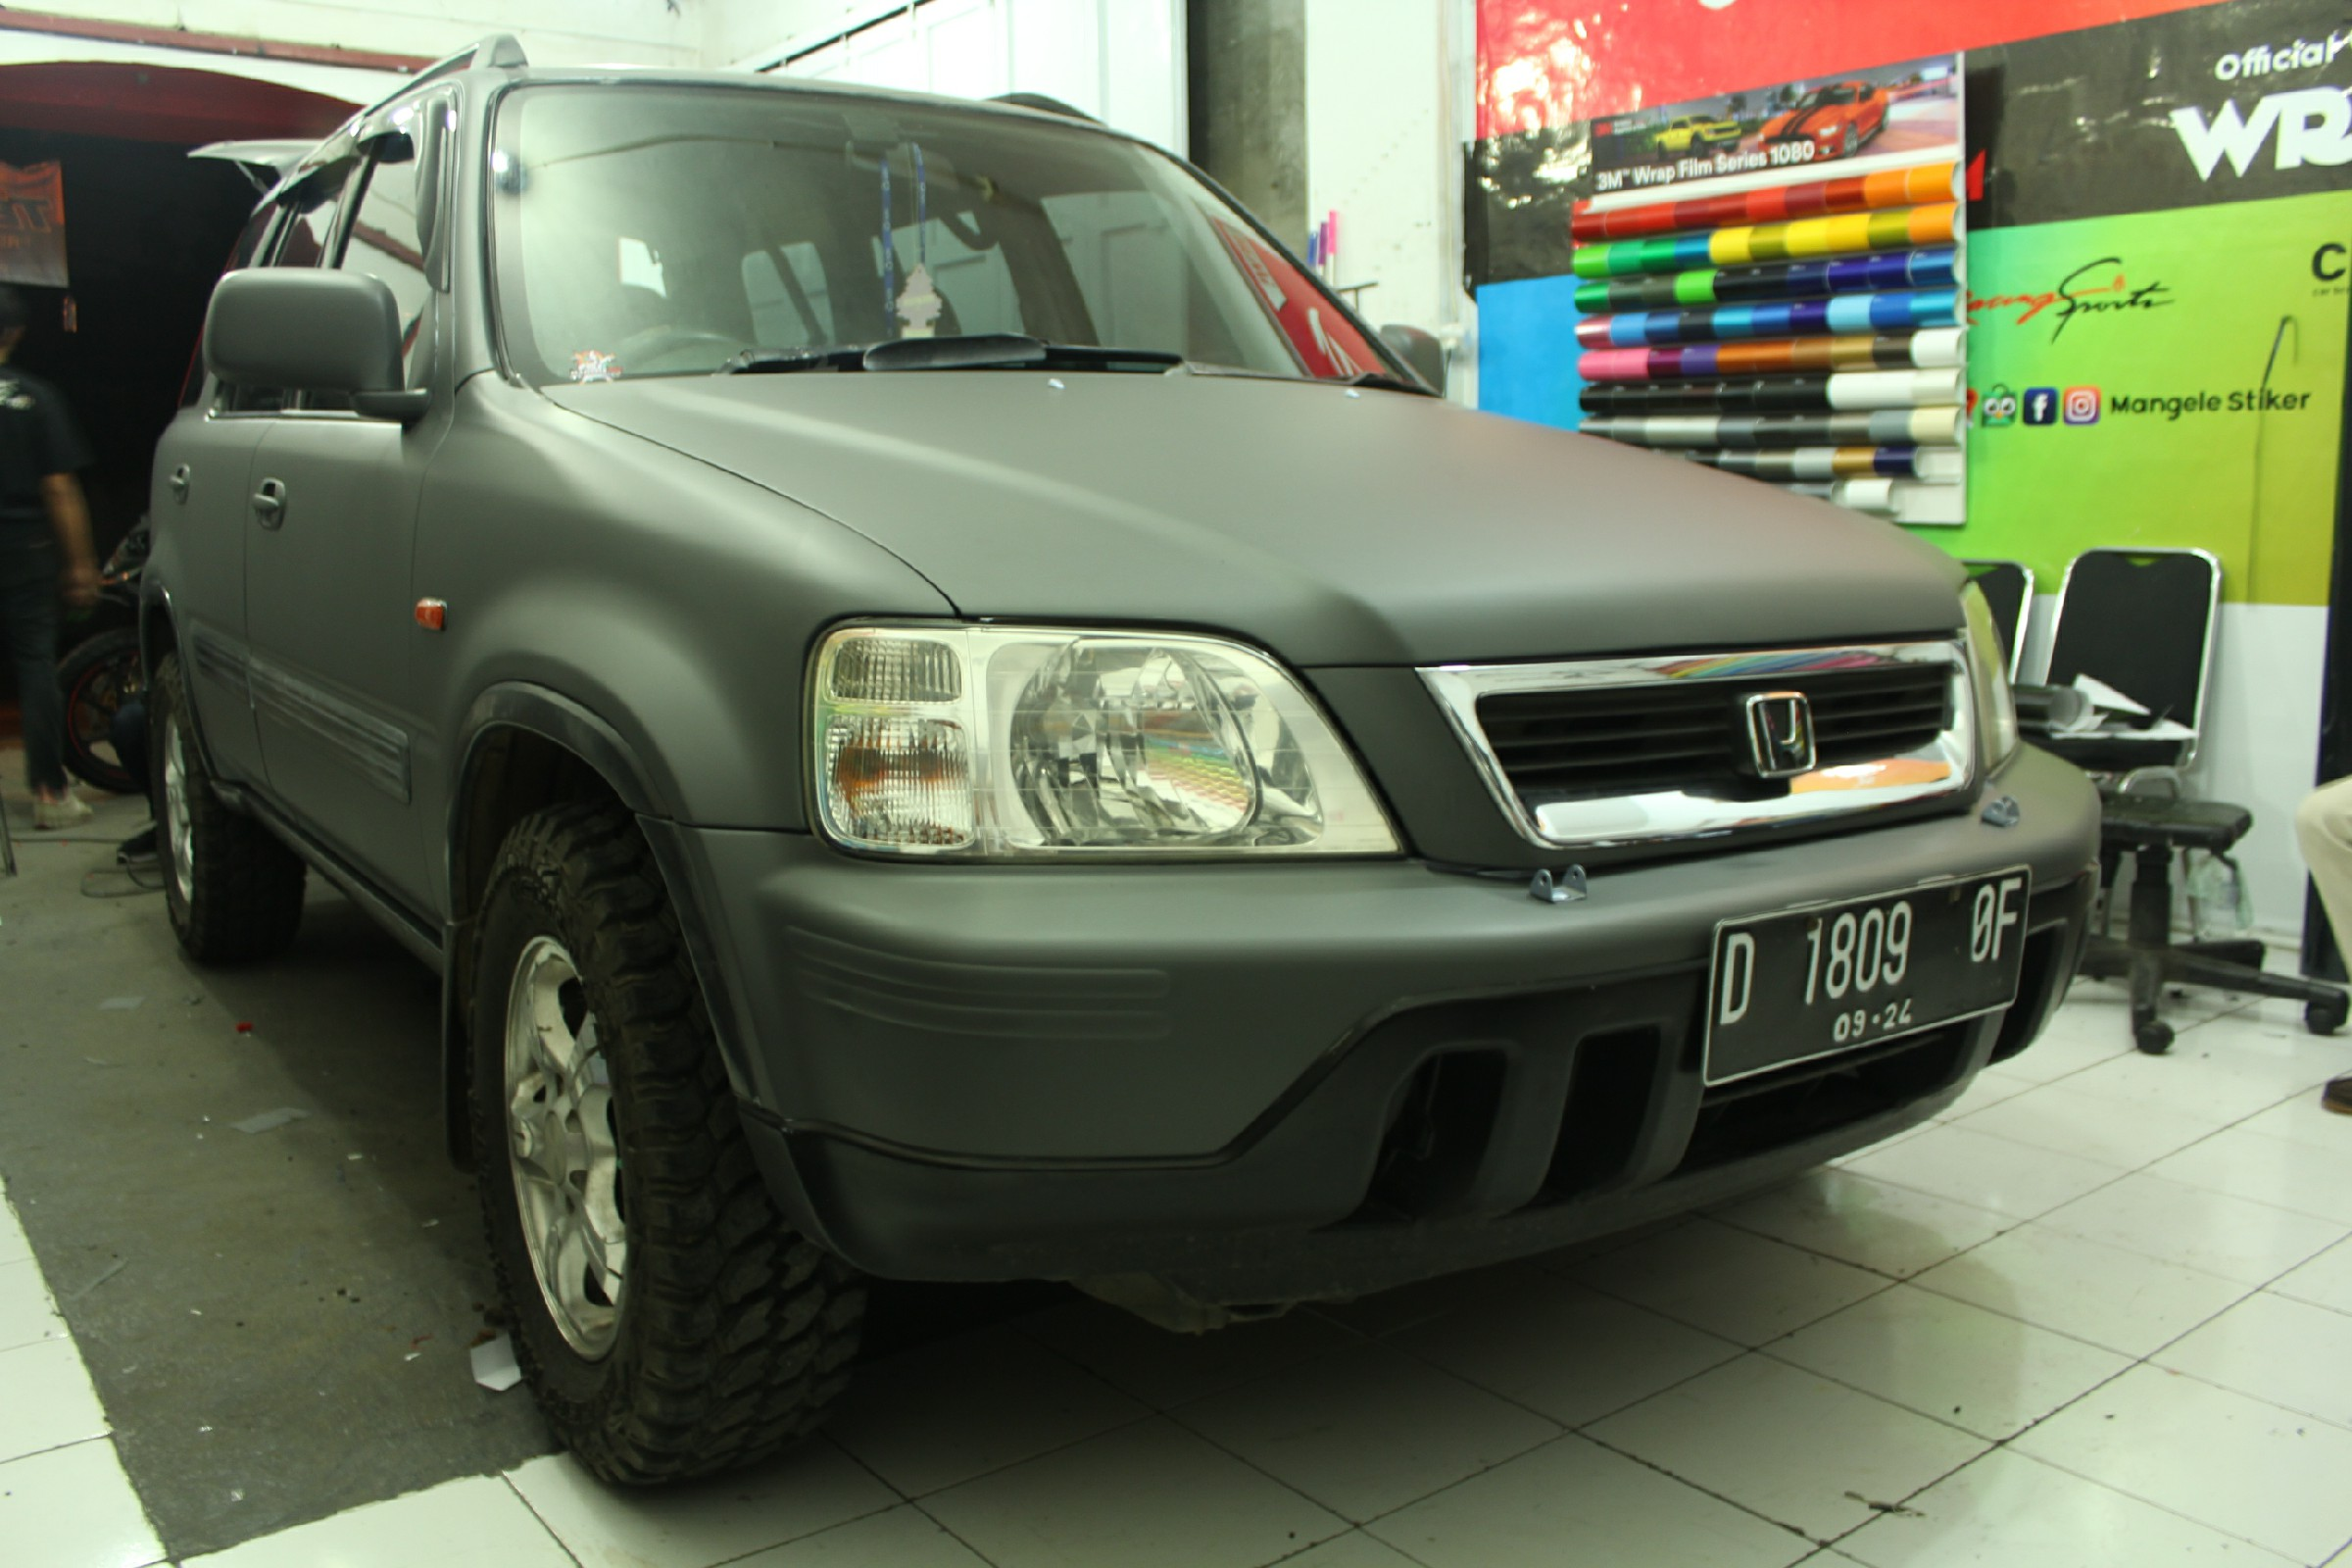 Wrapping Stiker Mobil | CRV Fullbody Dark Grey Doff | Mangele Stiker 081227722792